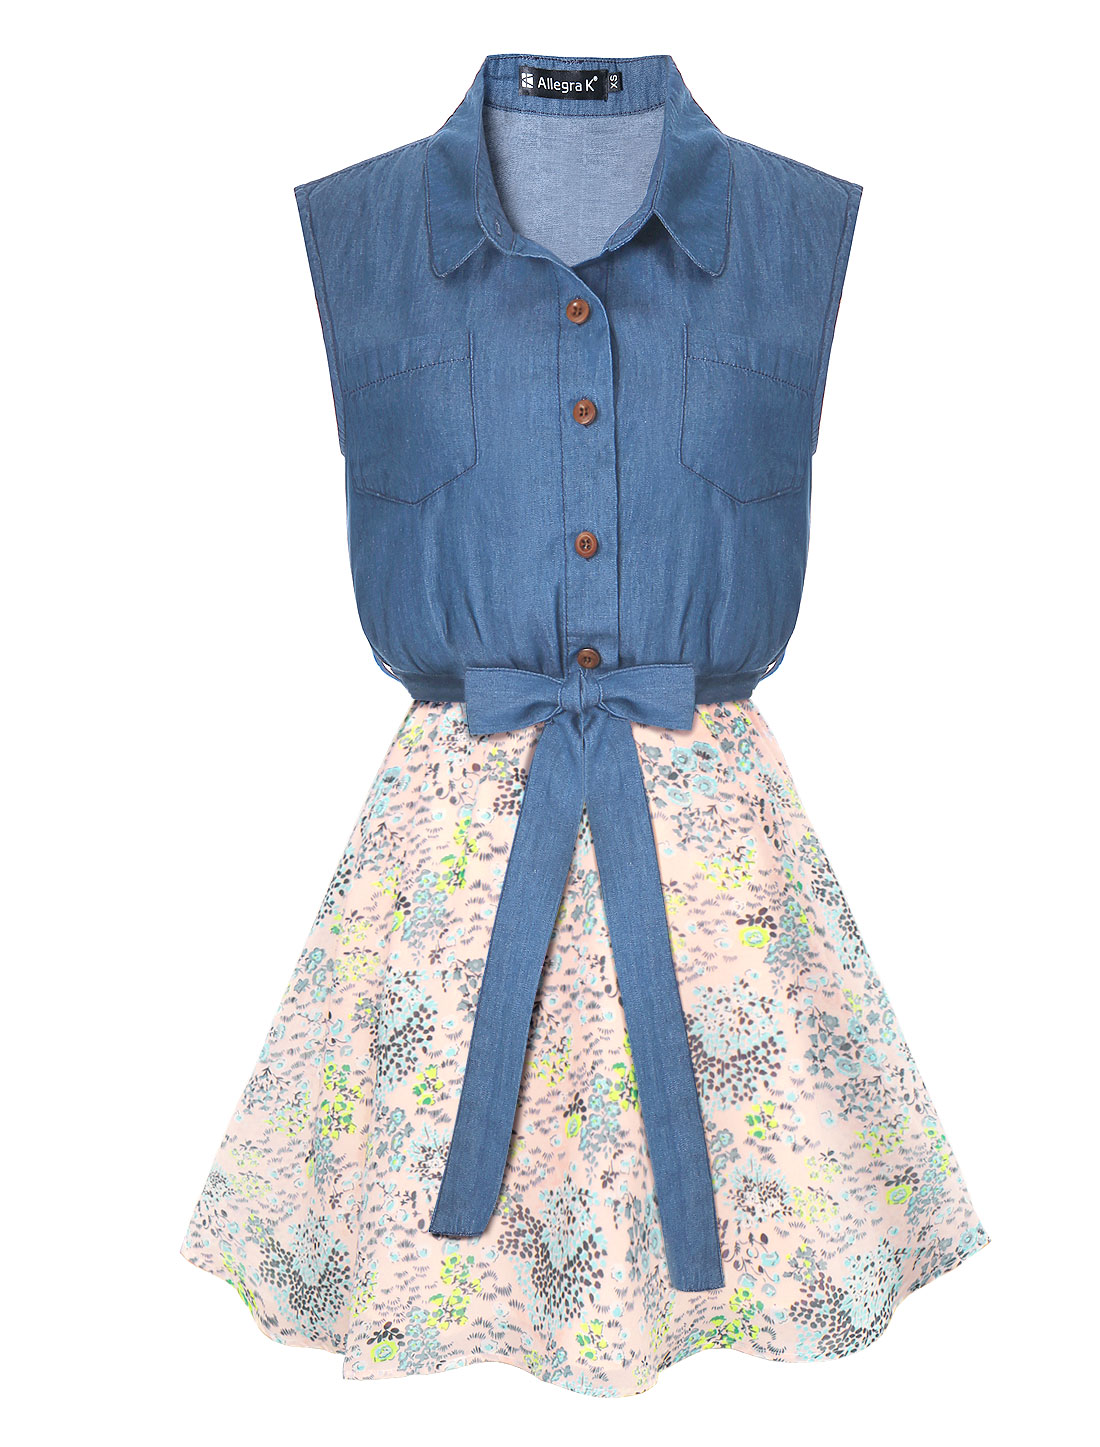 Lady Half Placket Flower Chiffon Panel Belted Denim Shirt Dress Pink L